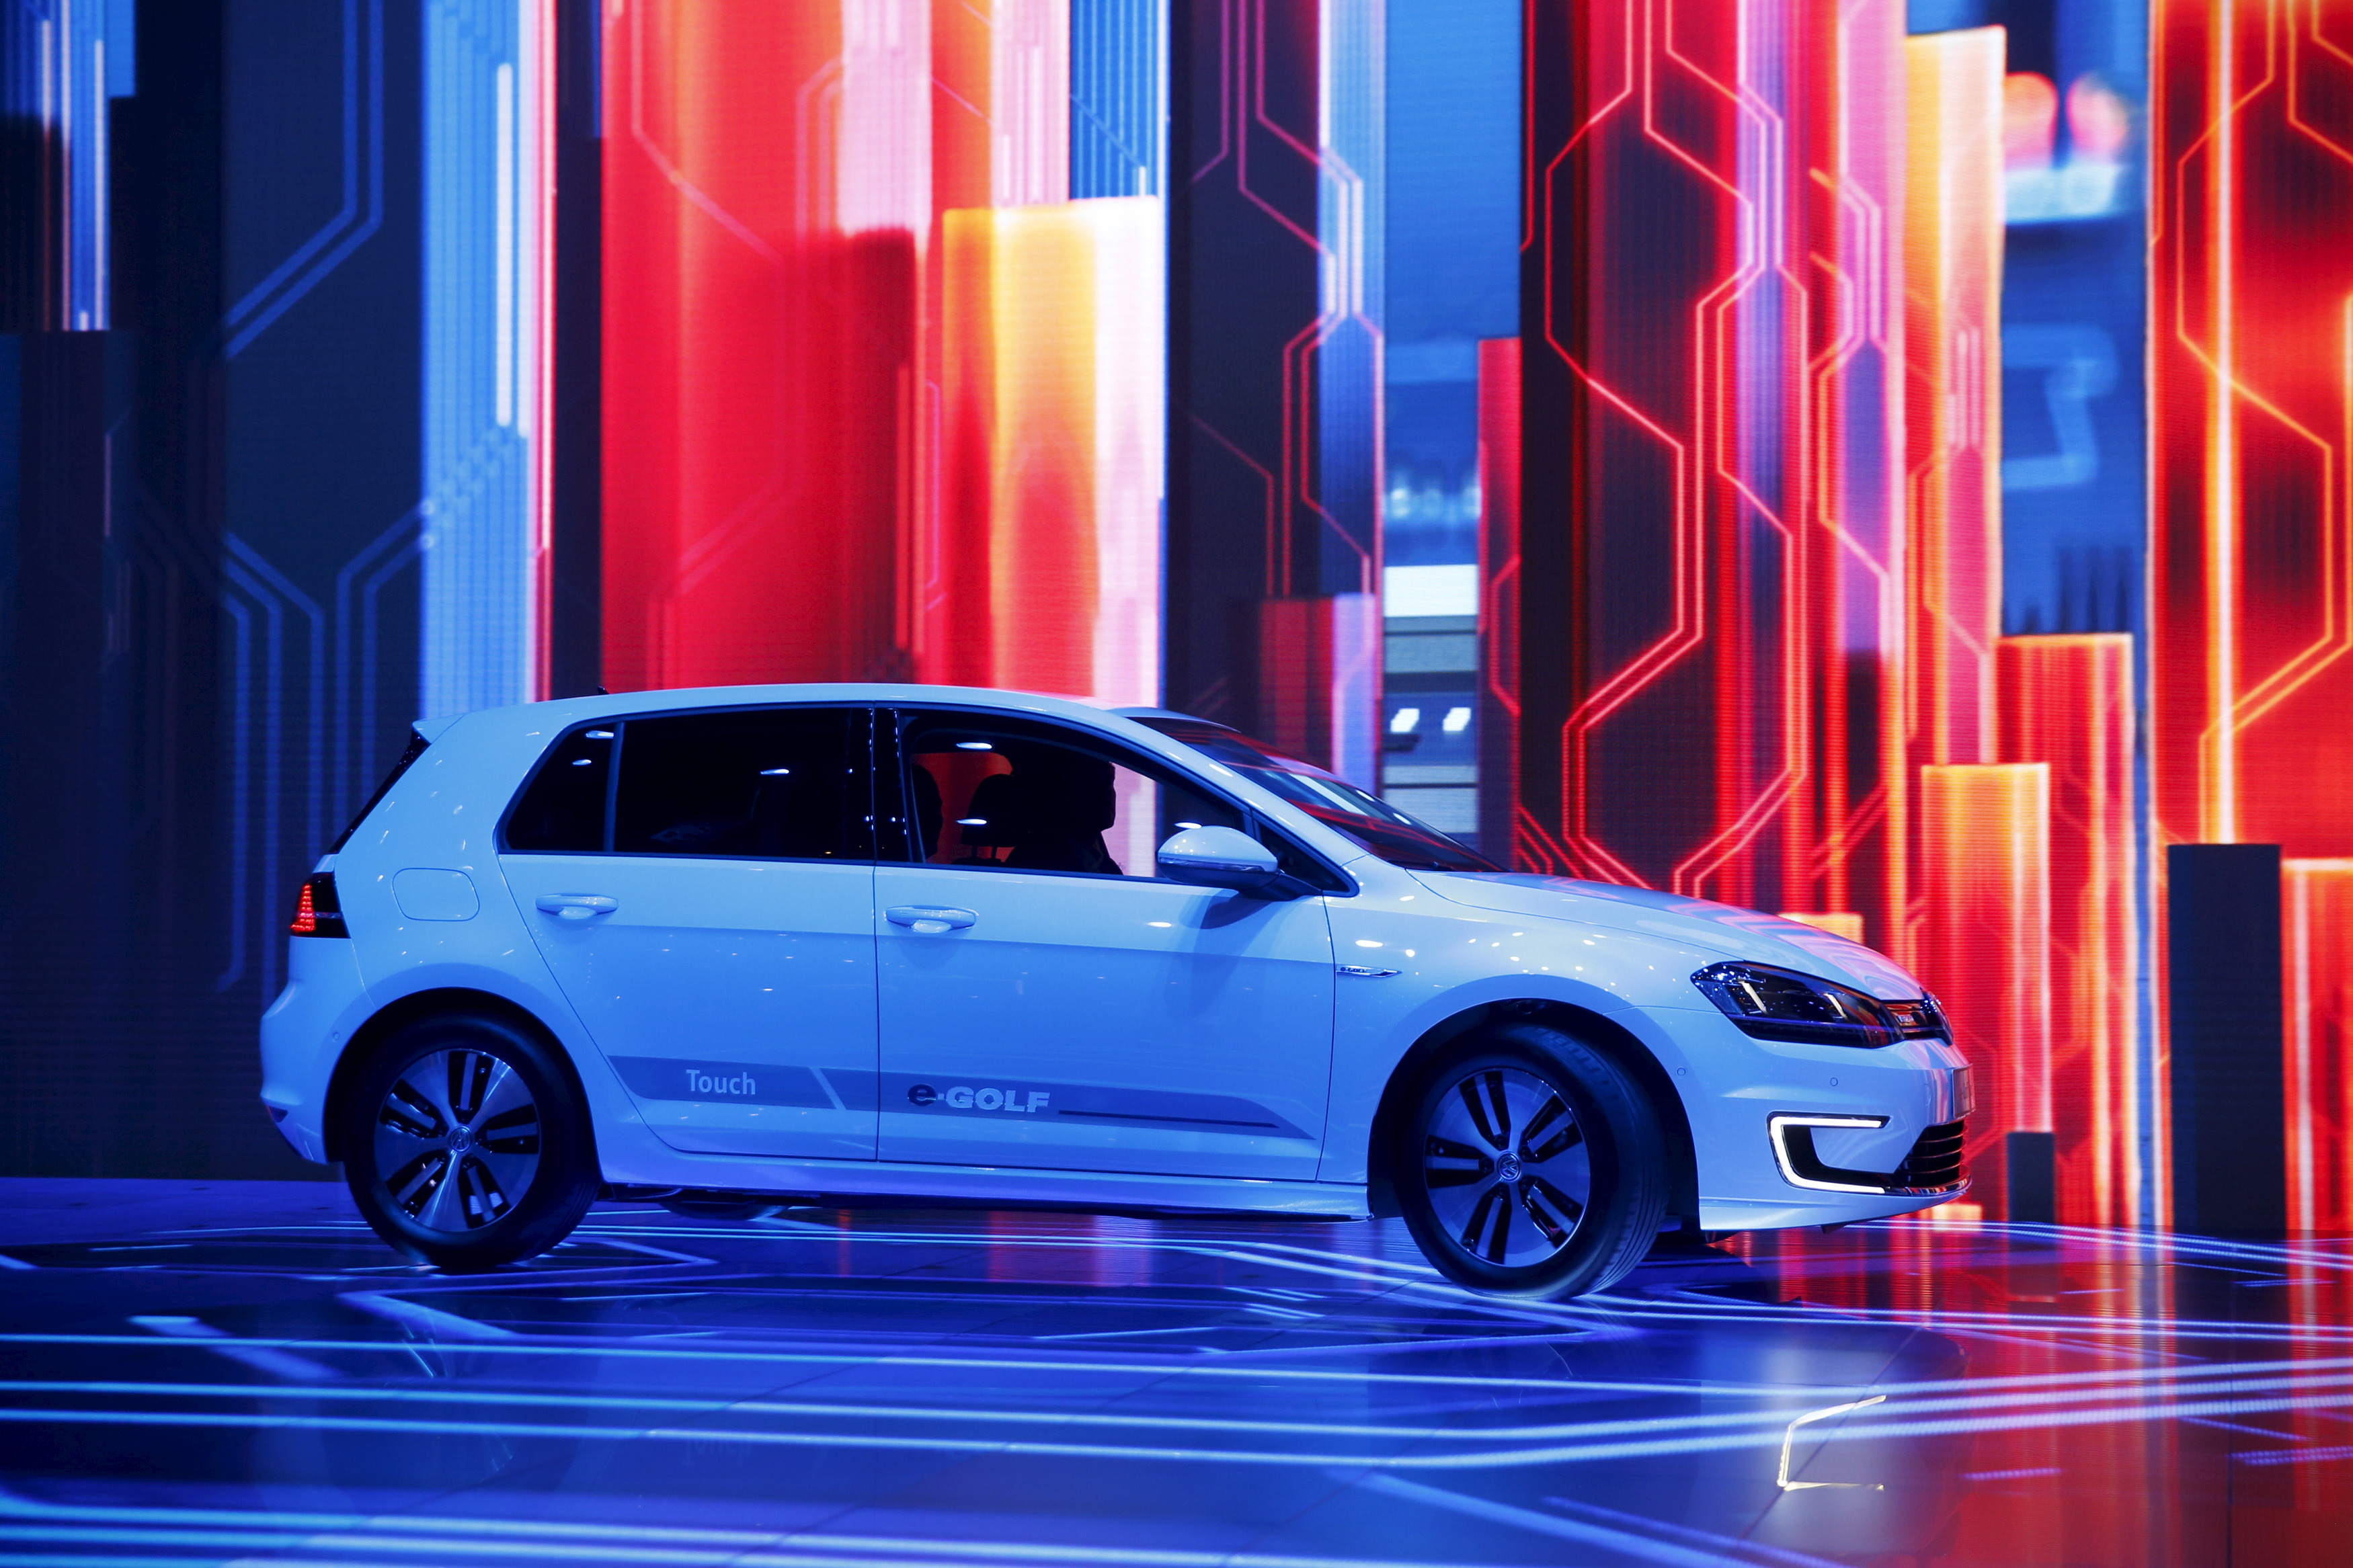 The Volkswagen e-Golf Touch electric vehicle is driven onstage during Herbert Diess' keynote address at the 2016 CES trade show in Las Vegas